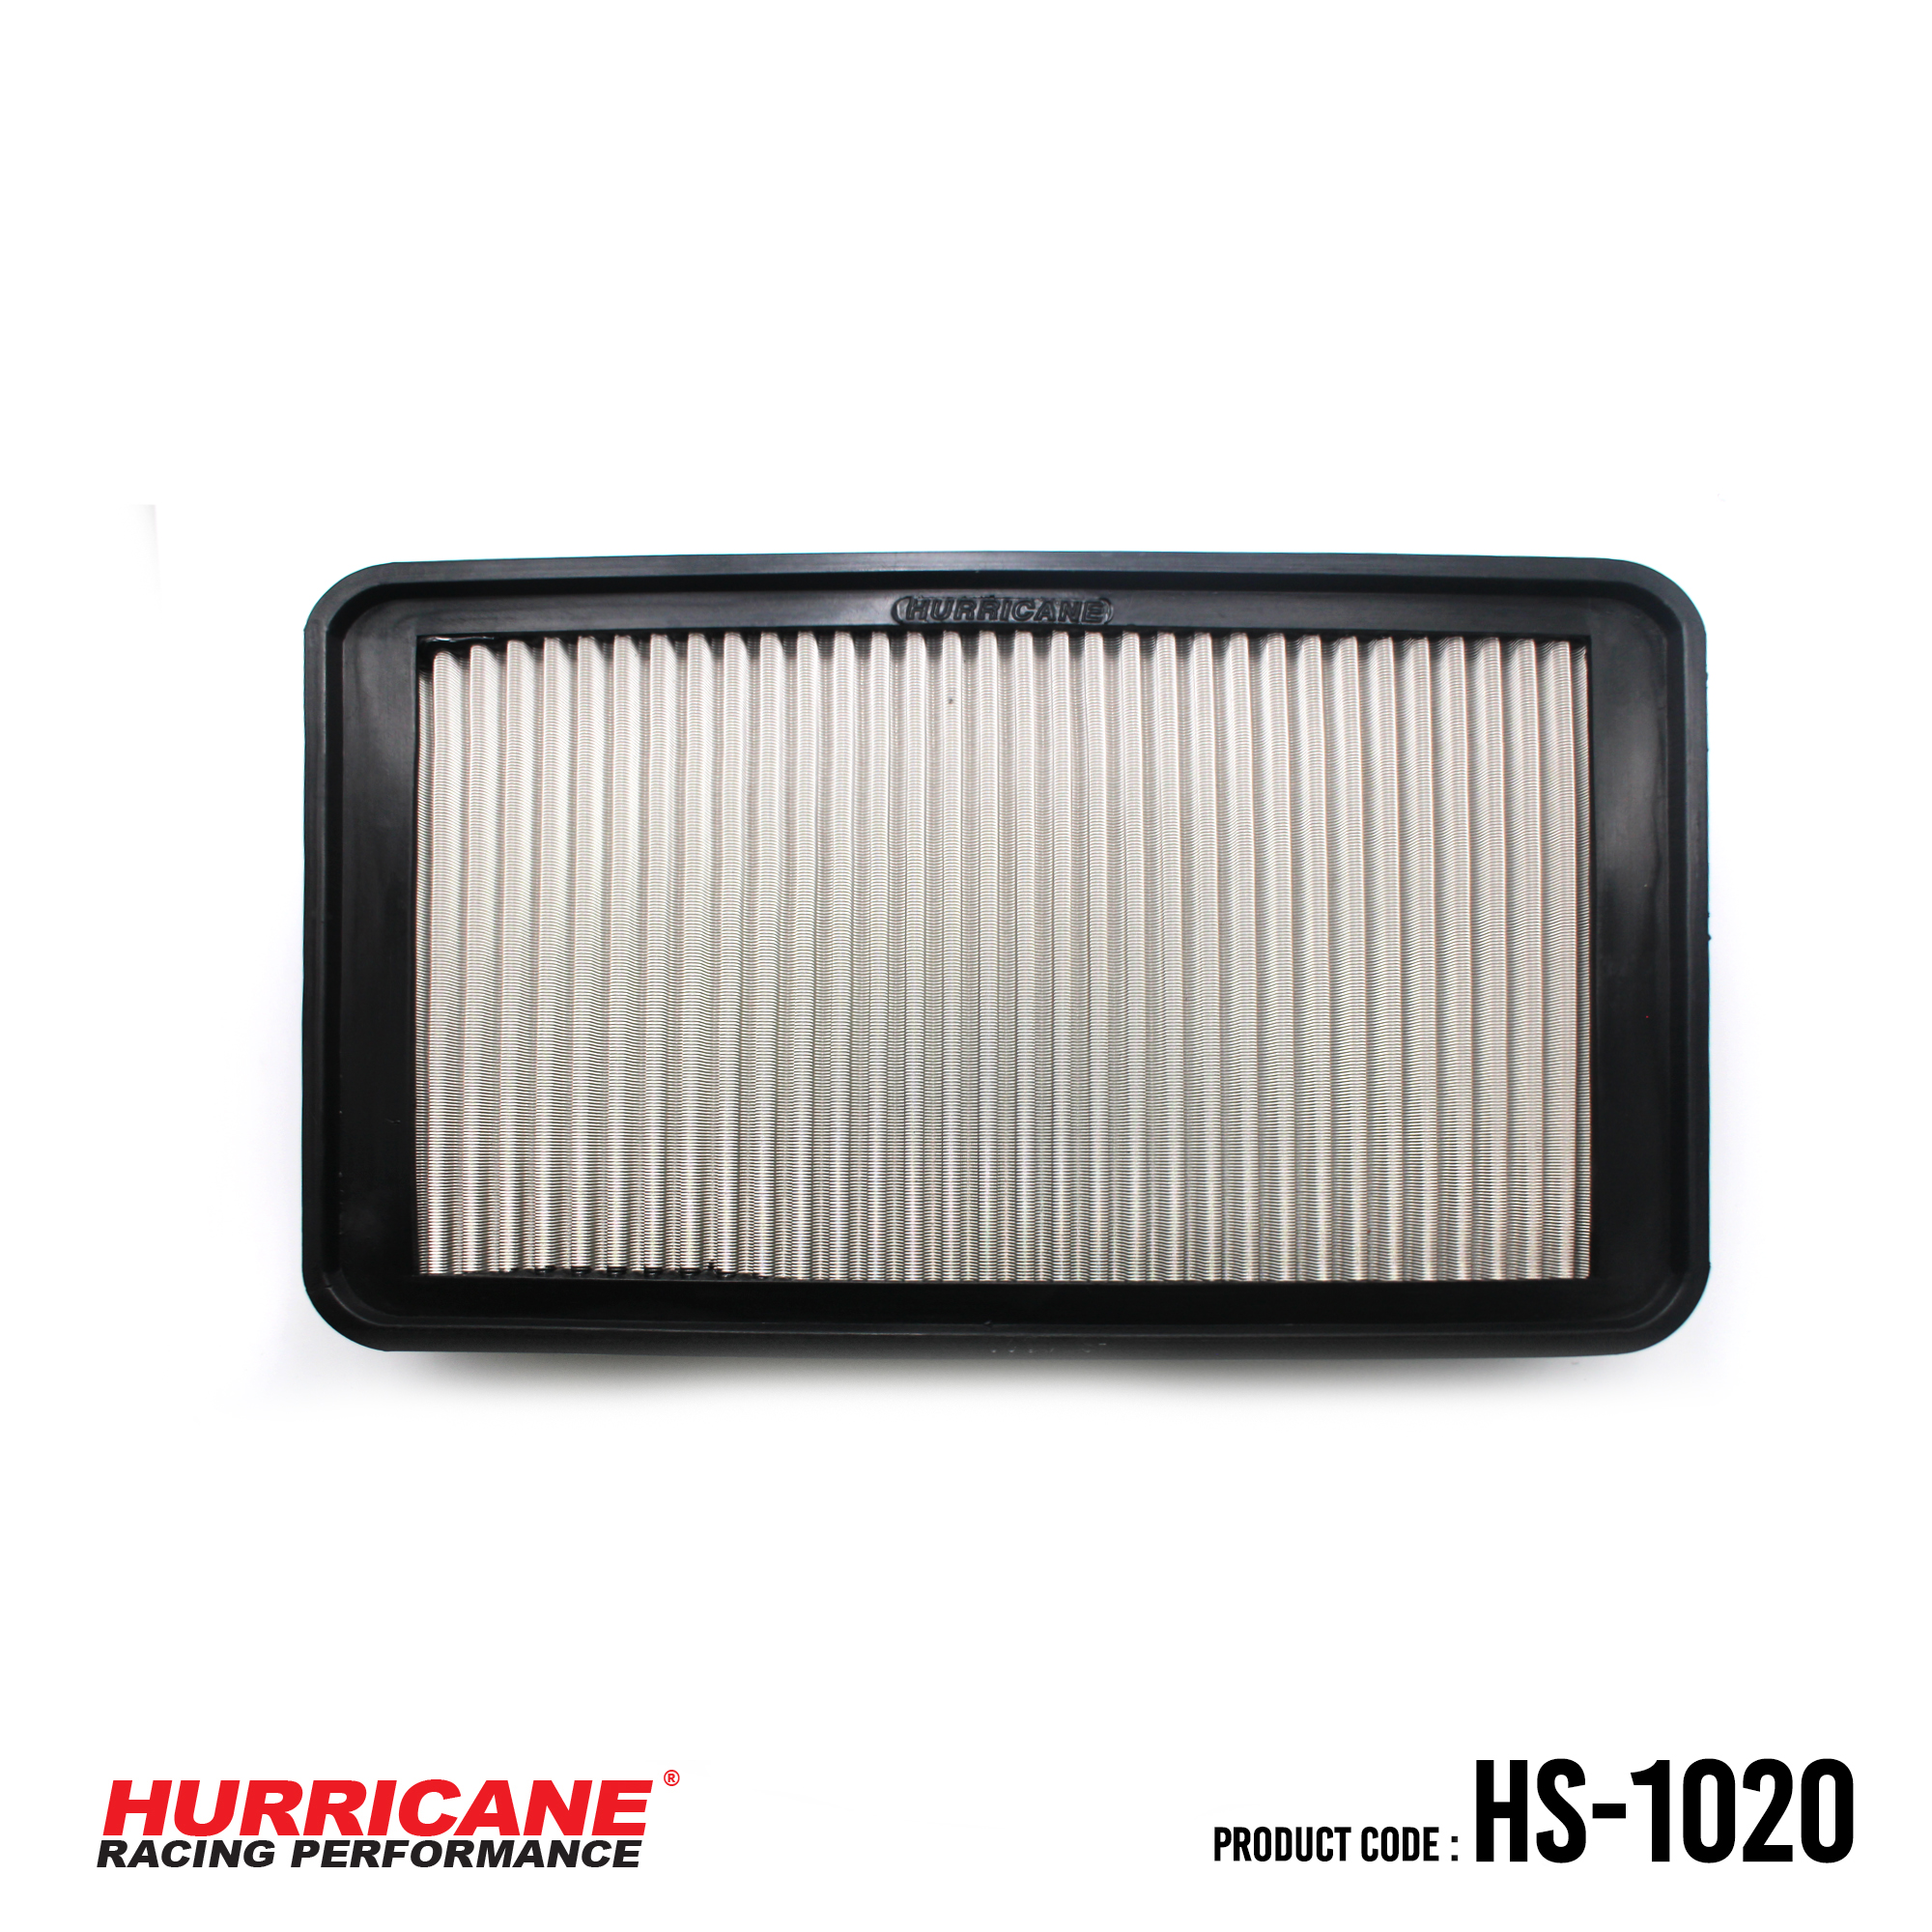 HURRICANE STAINLESS STEEL AIR FILTER FOR HS-1020 Toyota